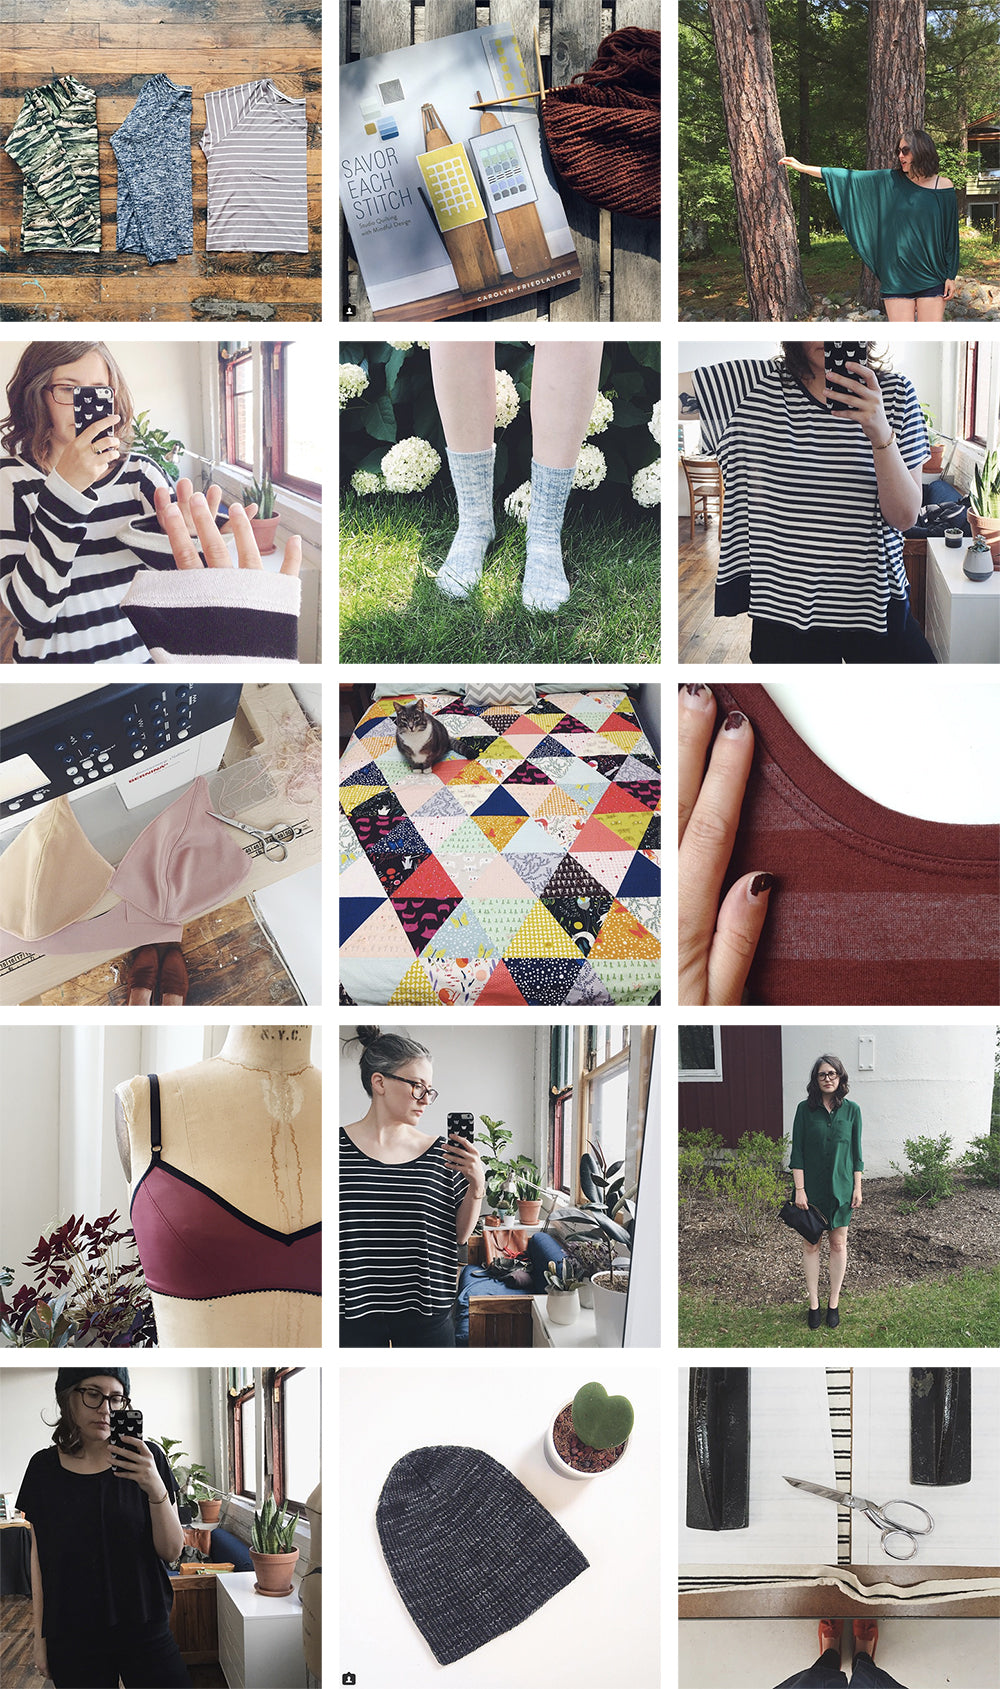 Unblogged Things I've Made | Grainline Studio